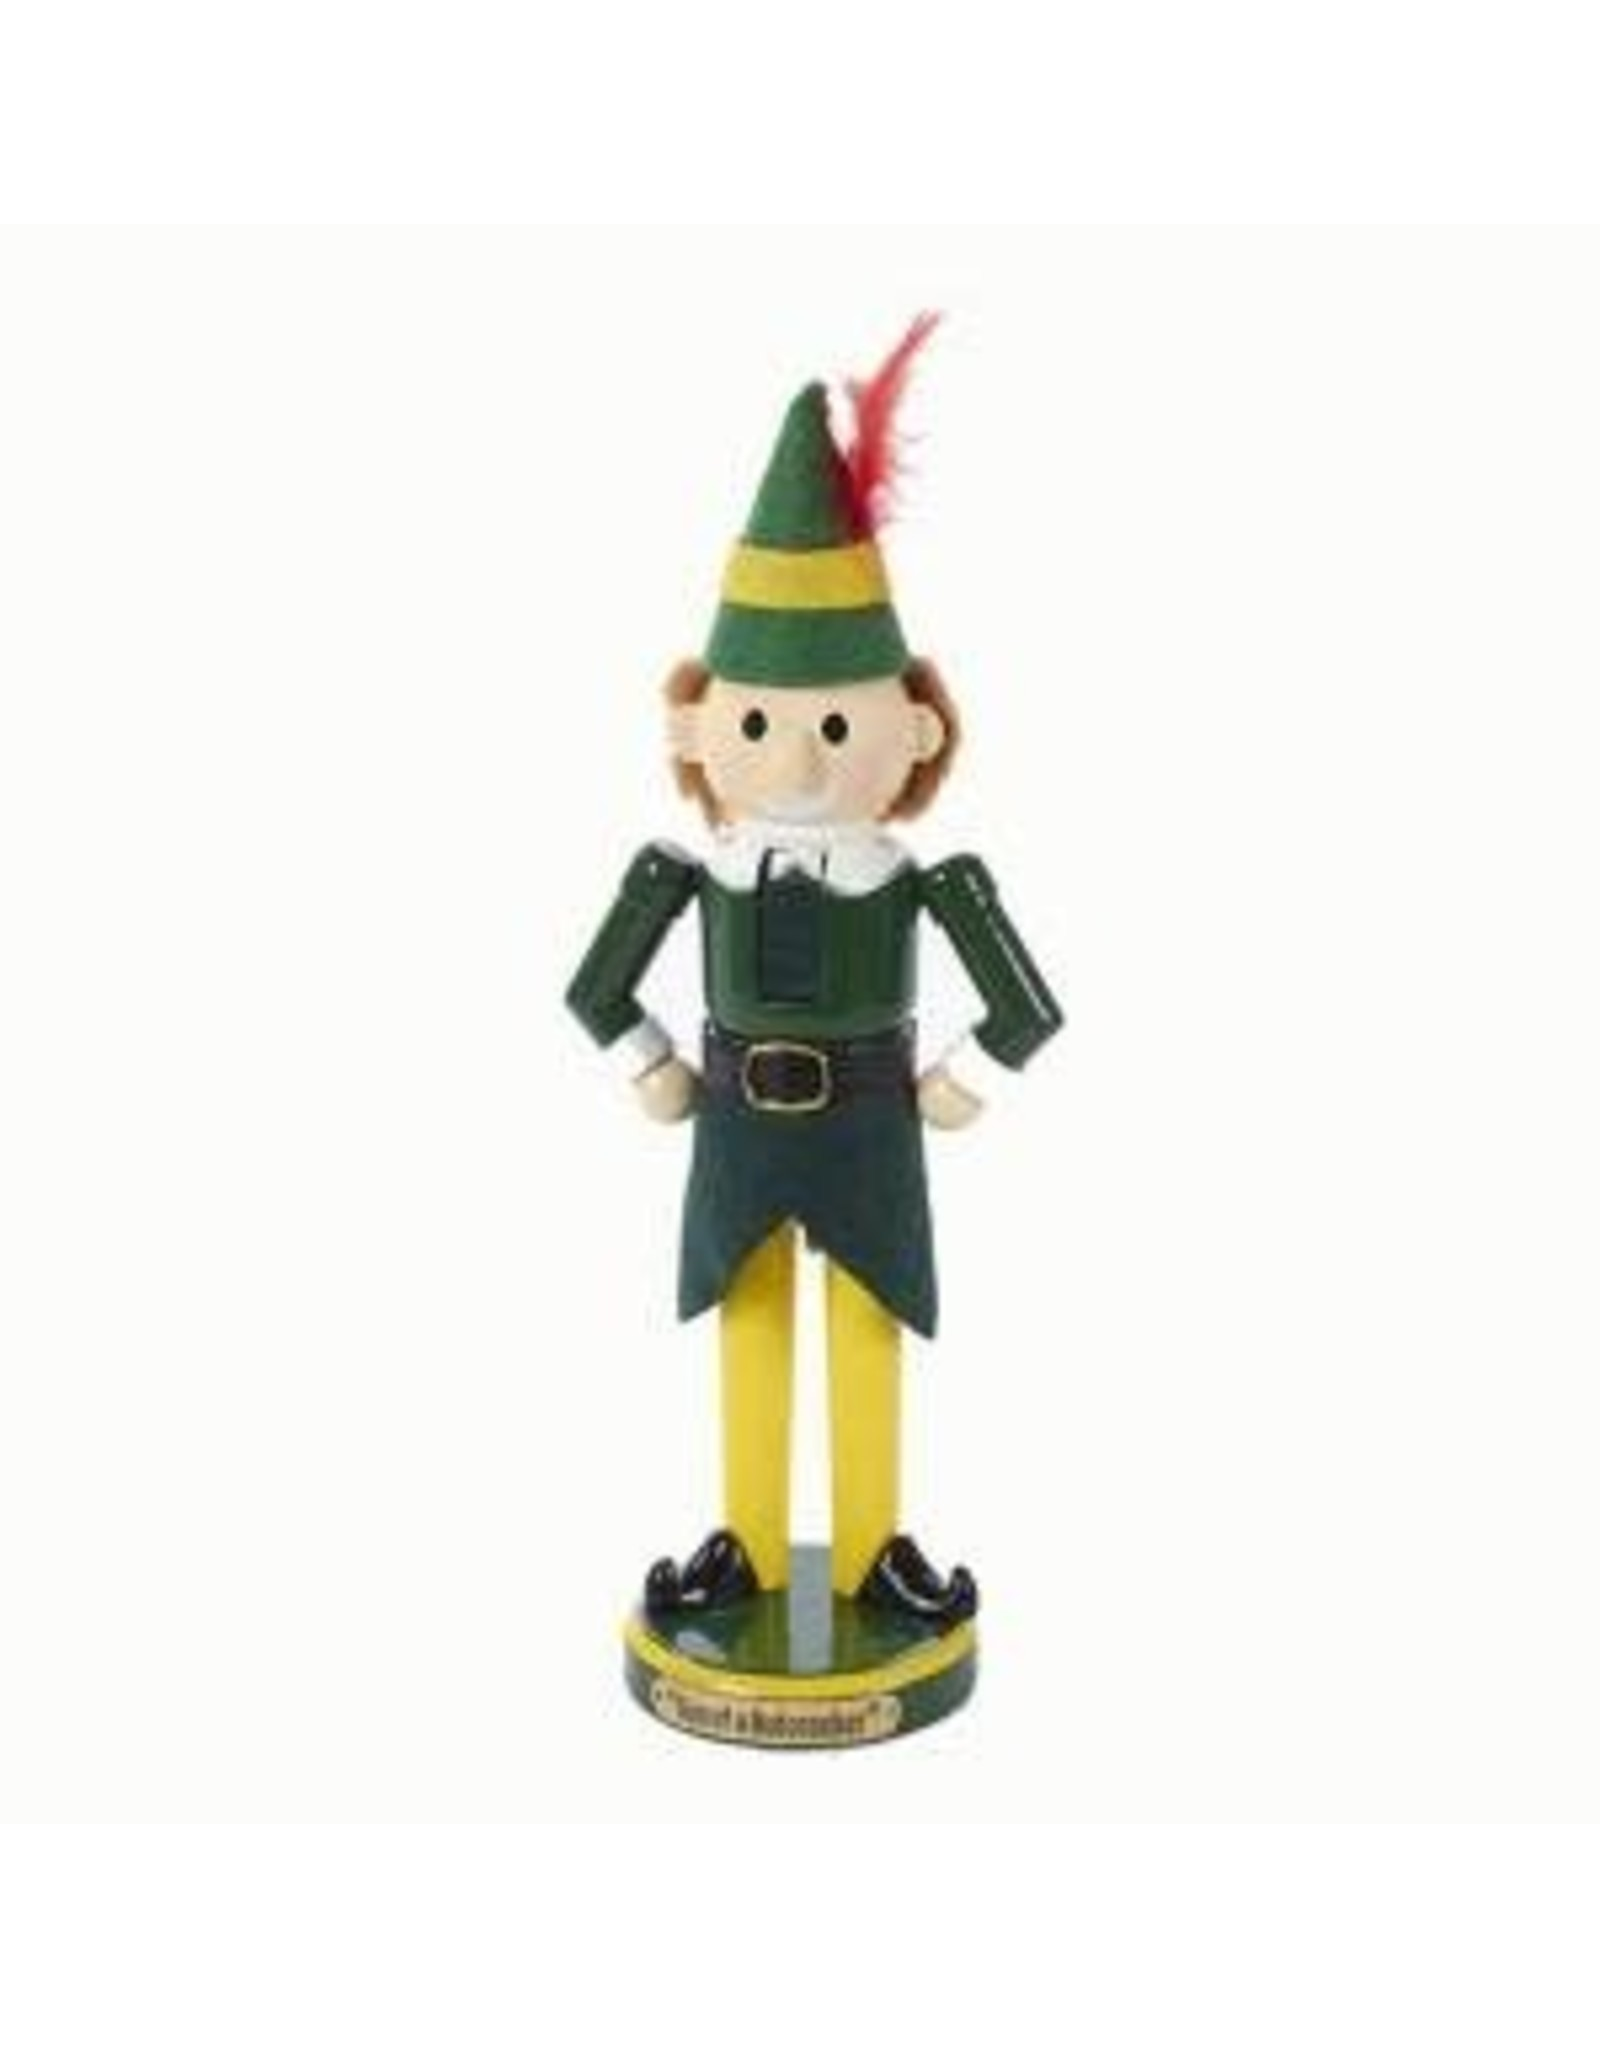 Kurt S. Adler Buddy the Elf Nutcracker